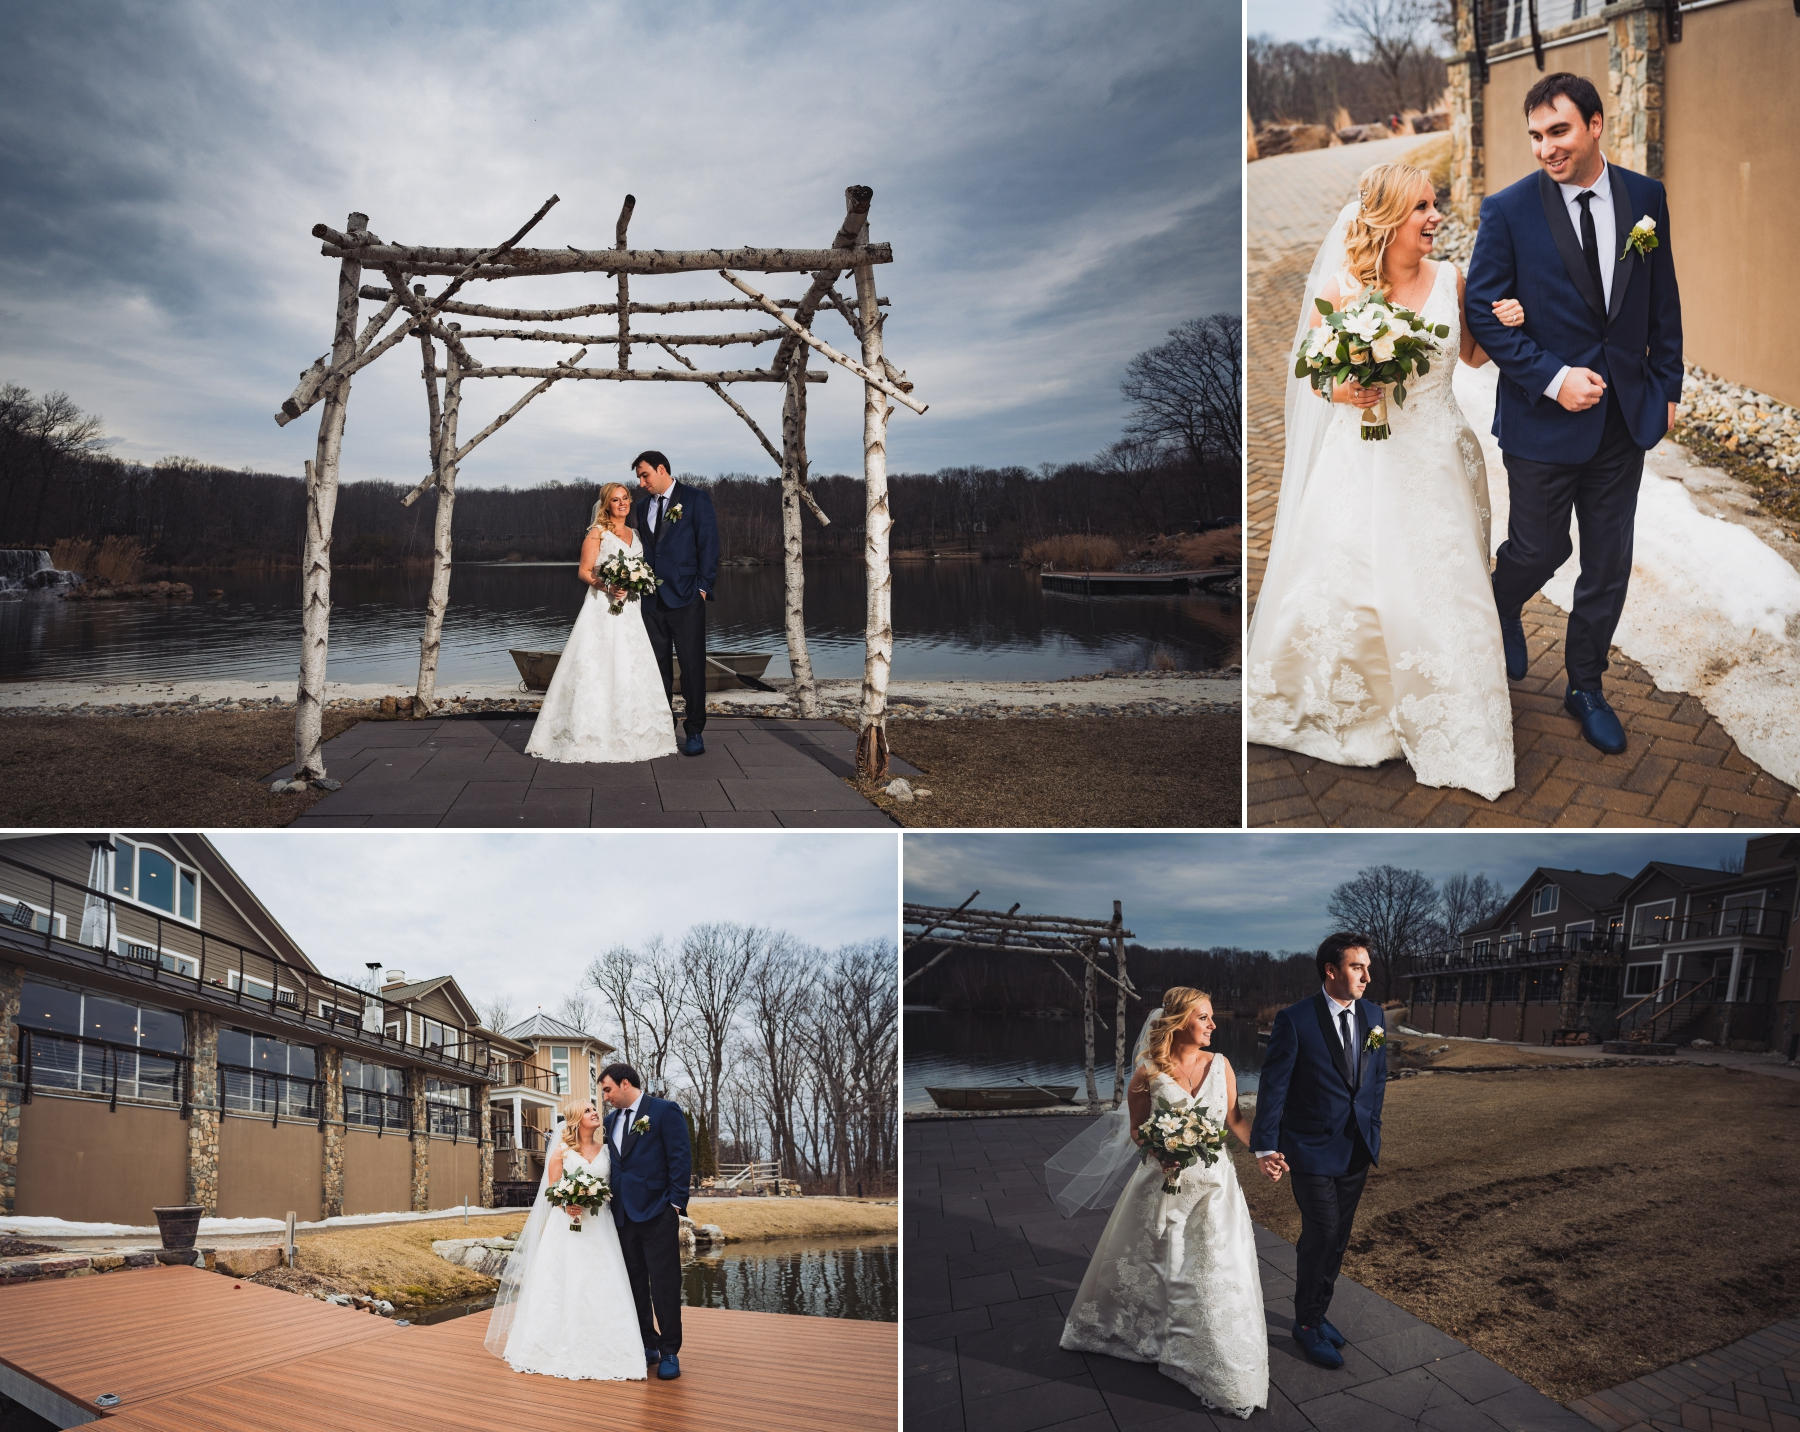 Formal portraits can be as easy as a walk in the park with your new spouse, or as dramatic as incorporating a cool sky and some interesting lighting. I love integrating different camera techniques to create something unique to the day of your wedding.